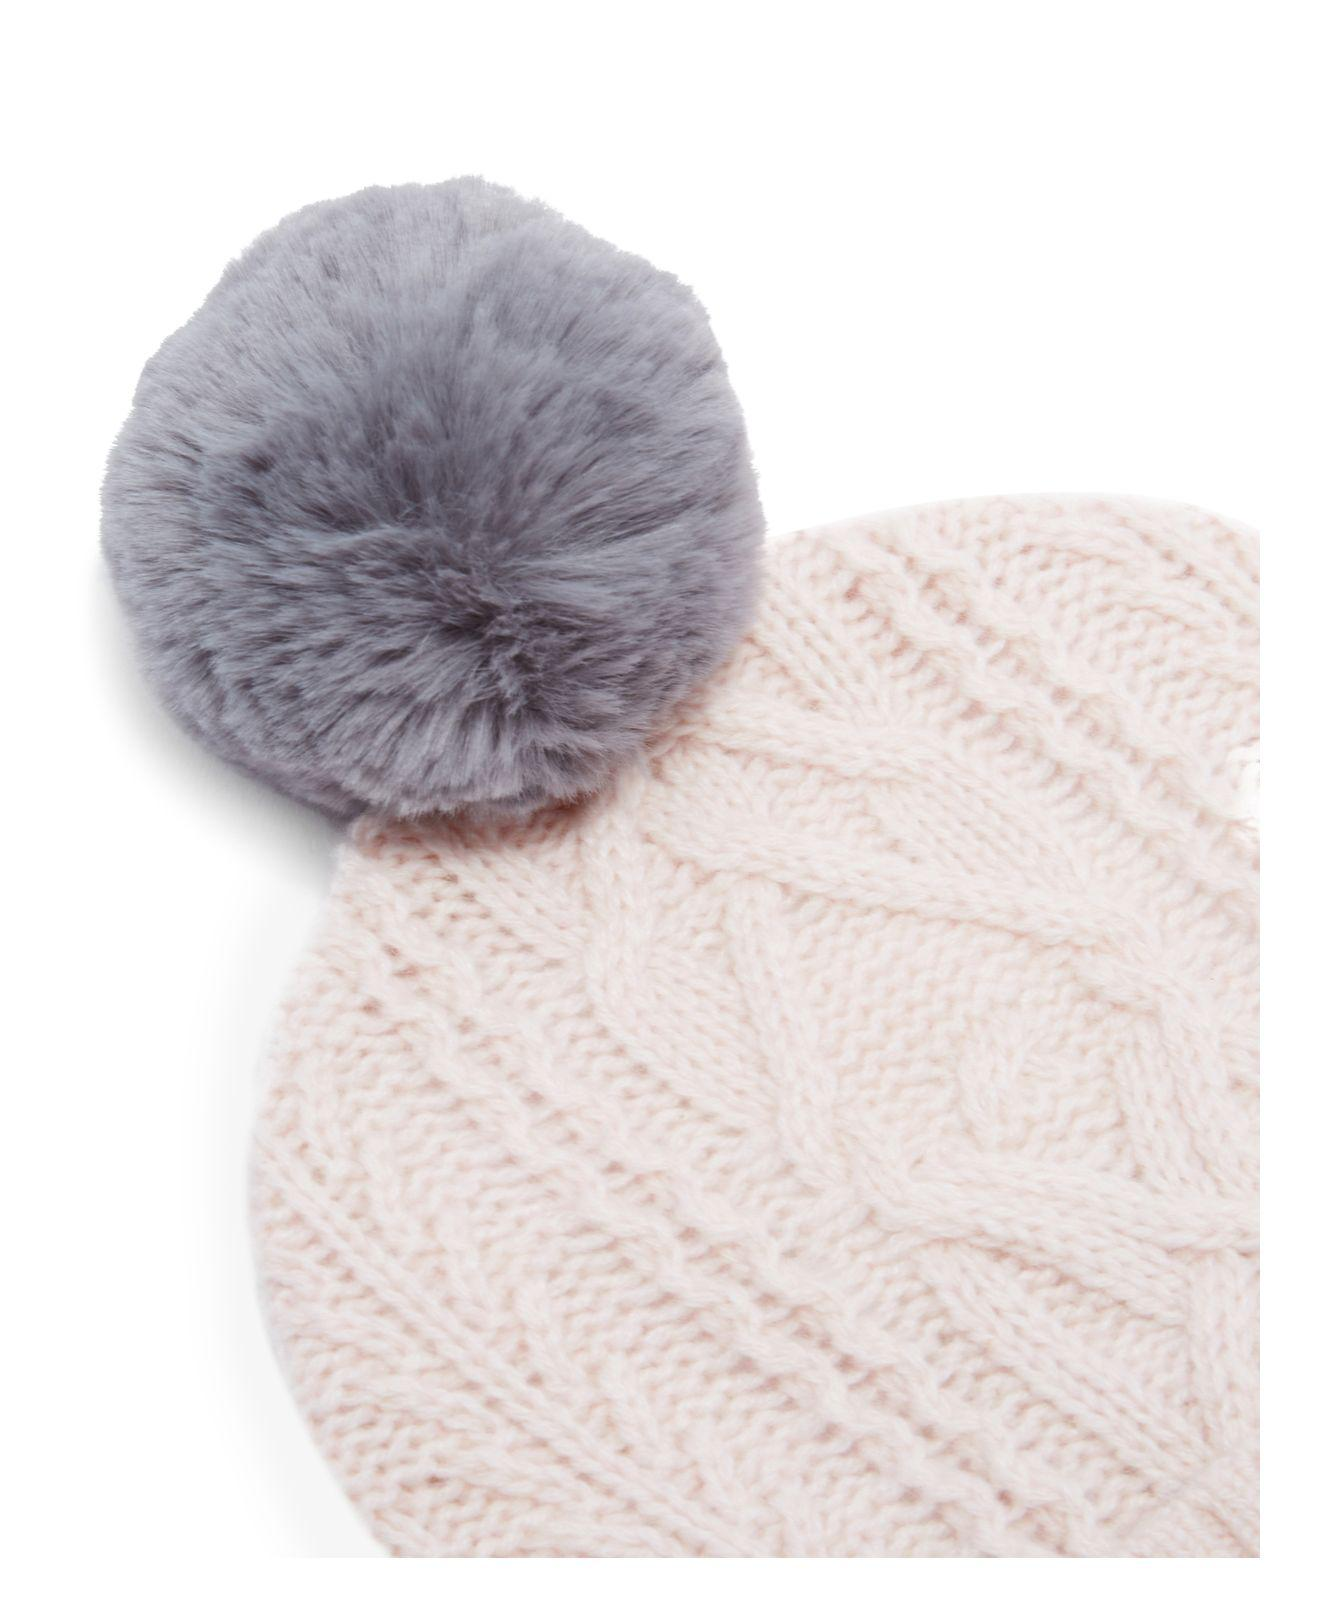 Lyst - Ted Baker Kyliee Cable Knit Pom-pom Beanie in Pink f227a82e2ffc